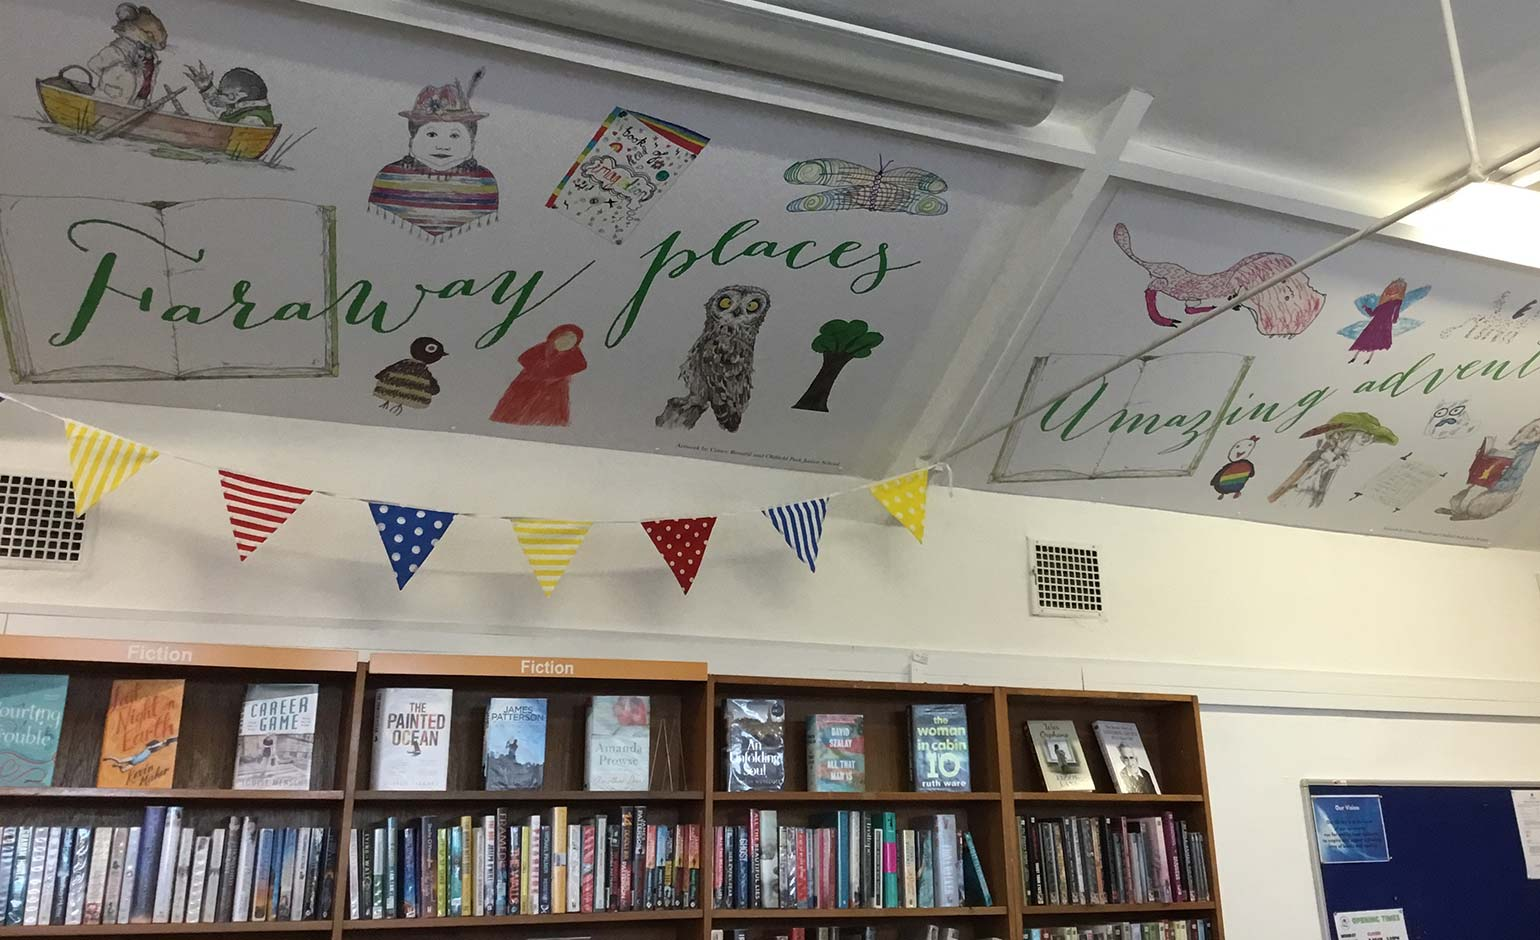 Moorland Road community library opens to the public with vibrant new look